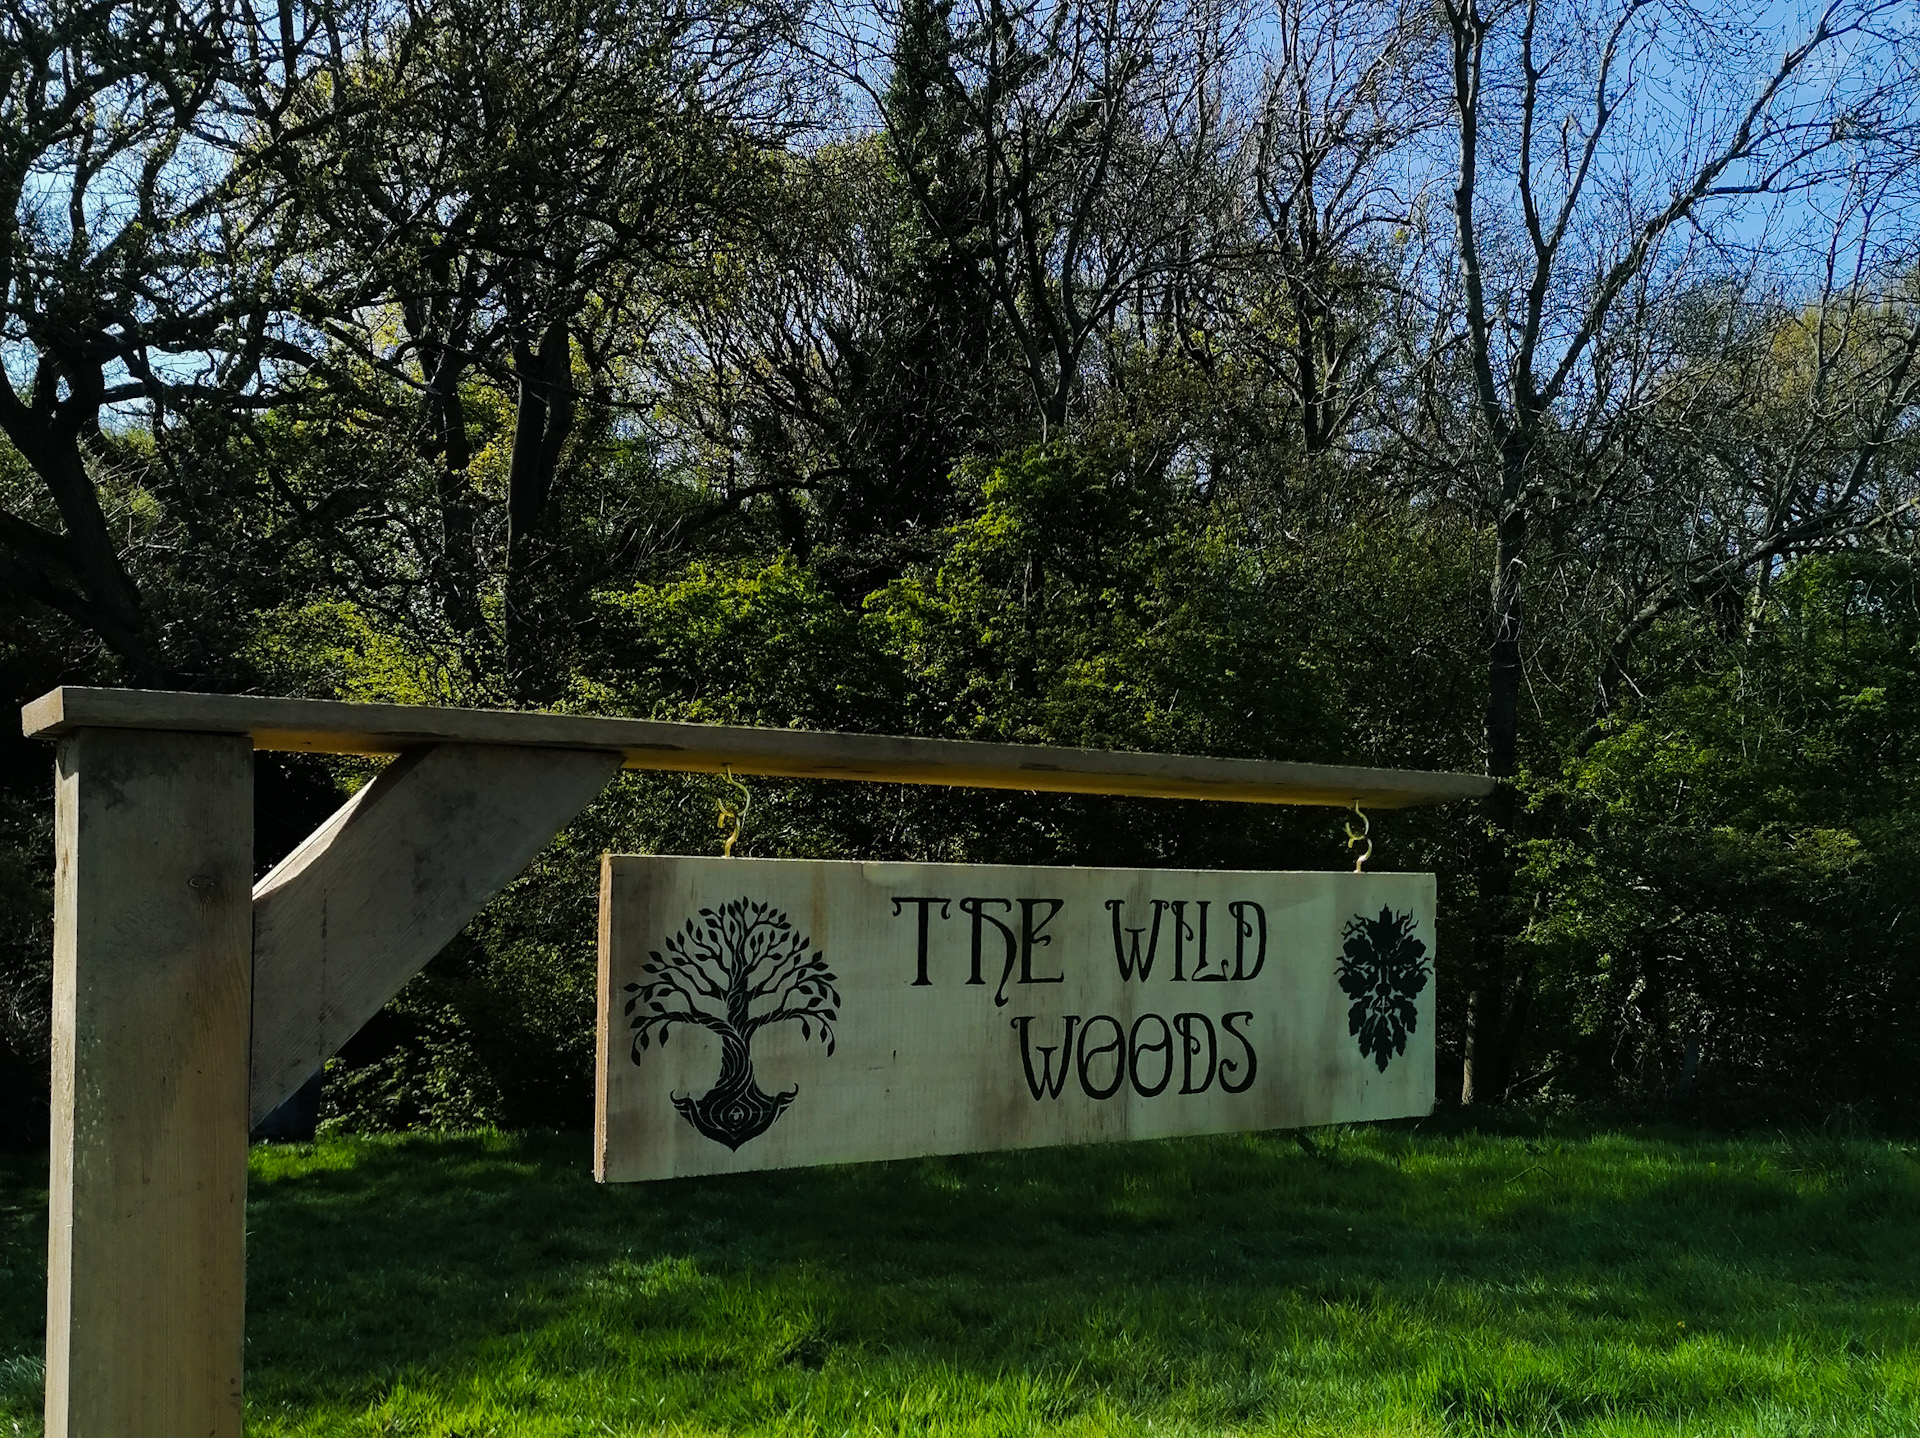 The sign to the Wild Woods